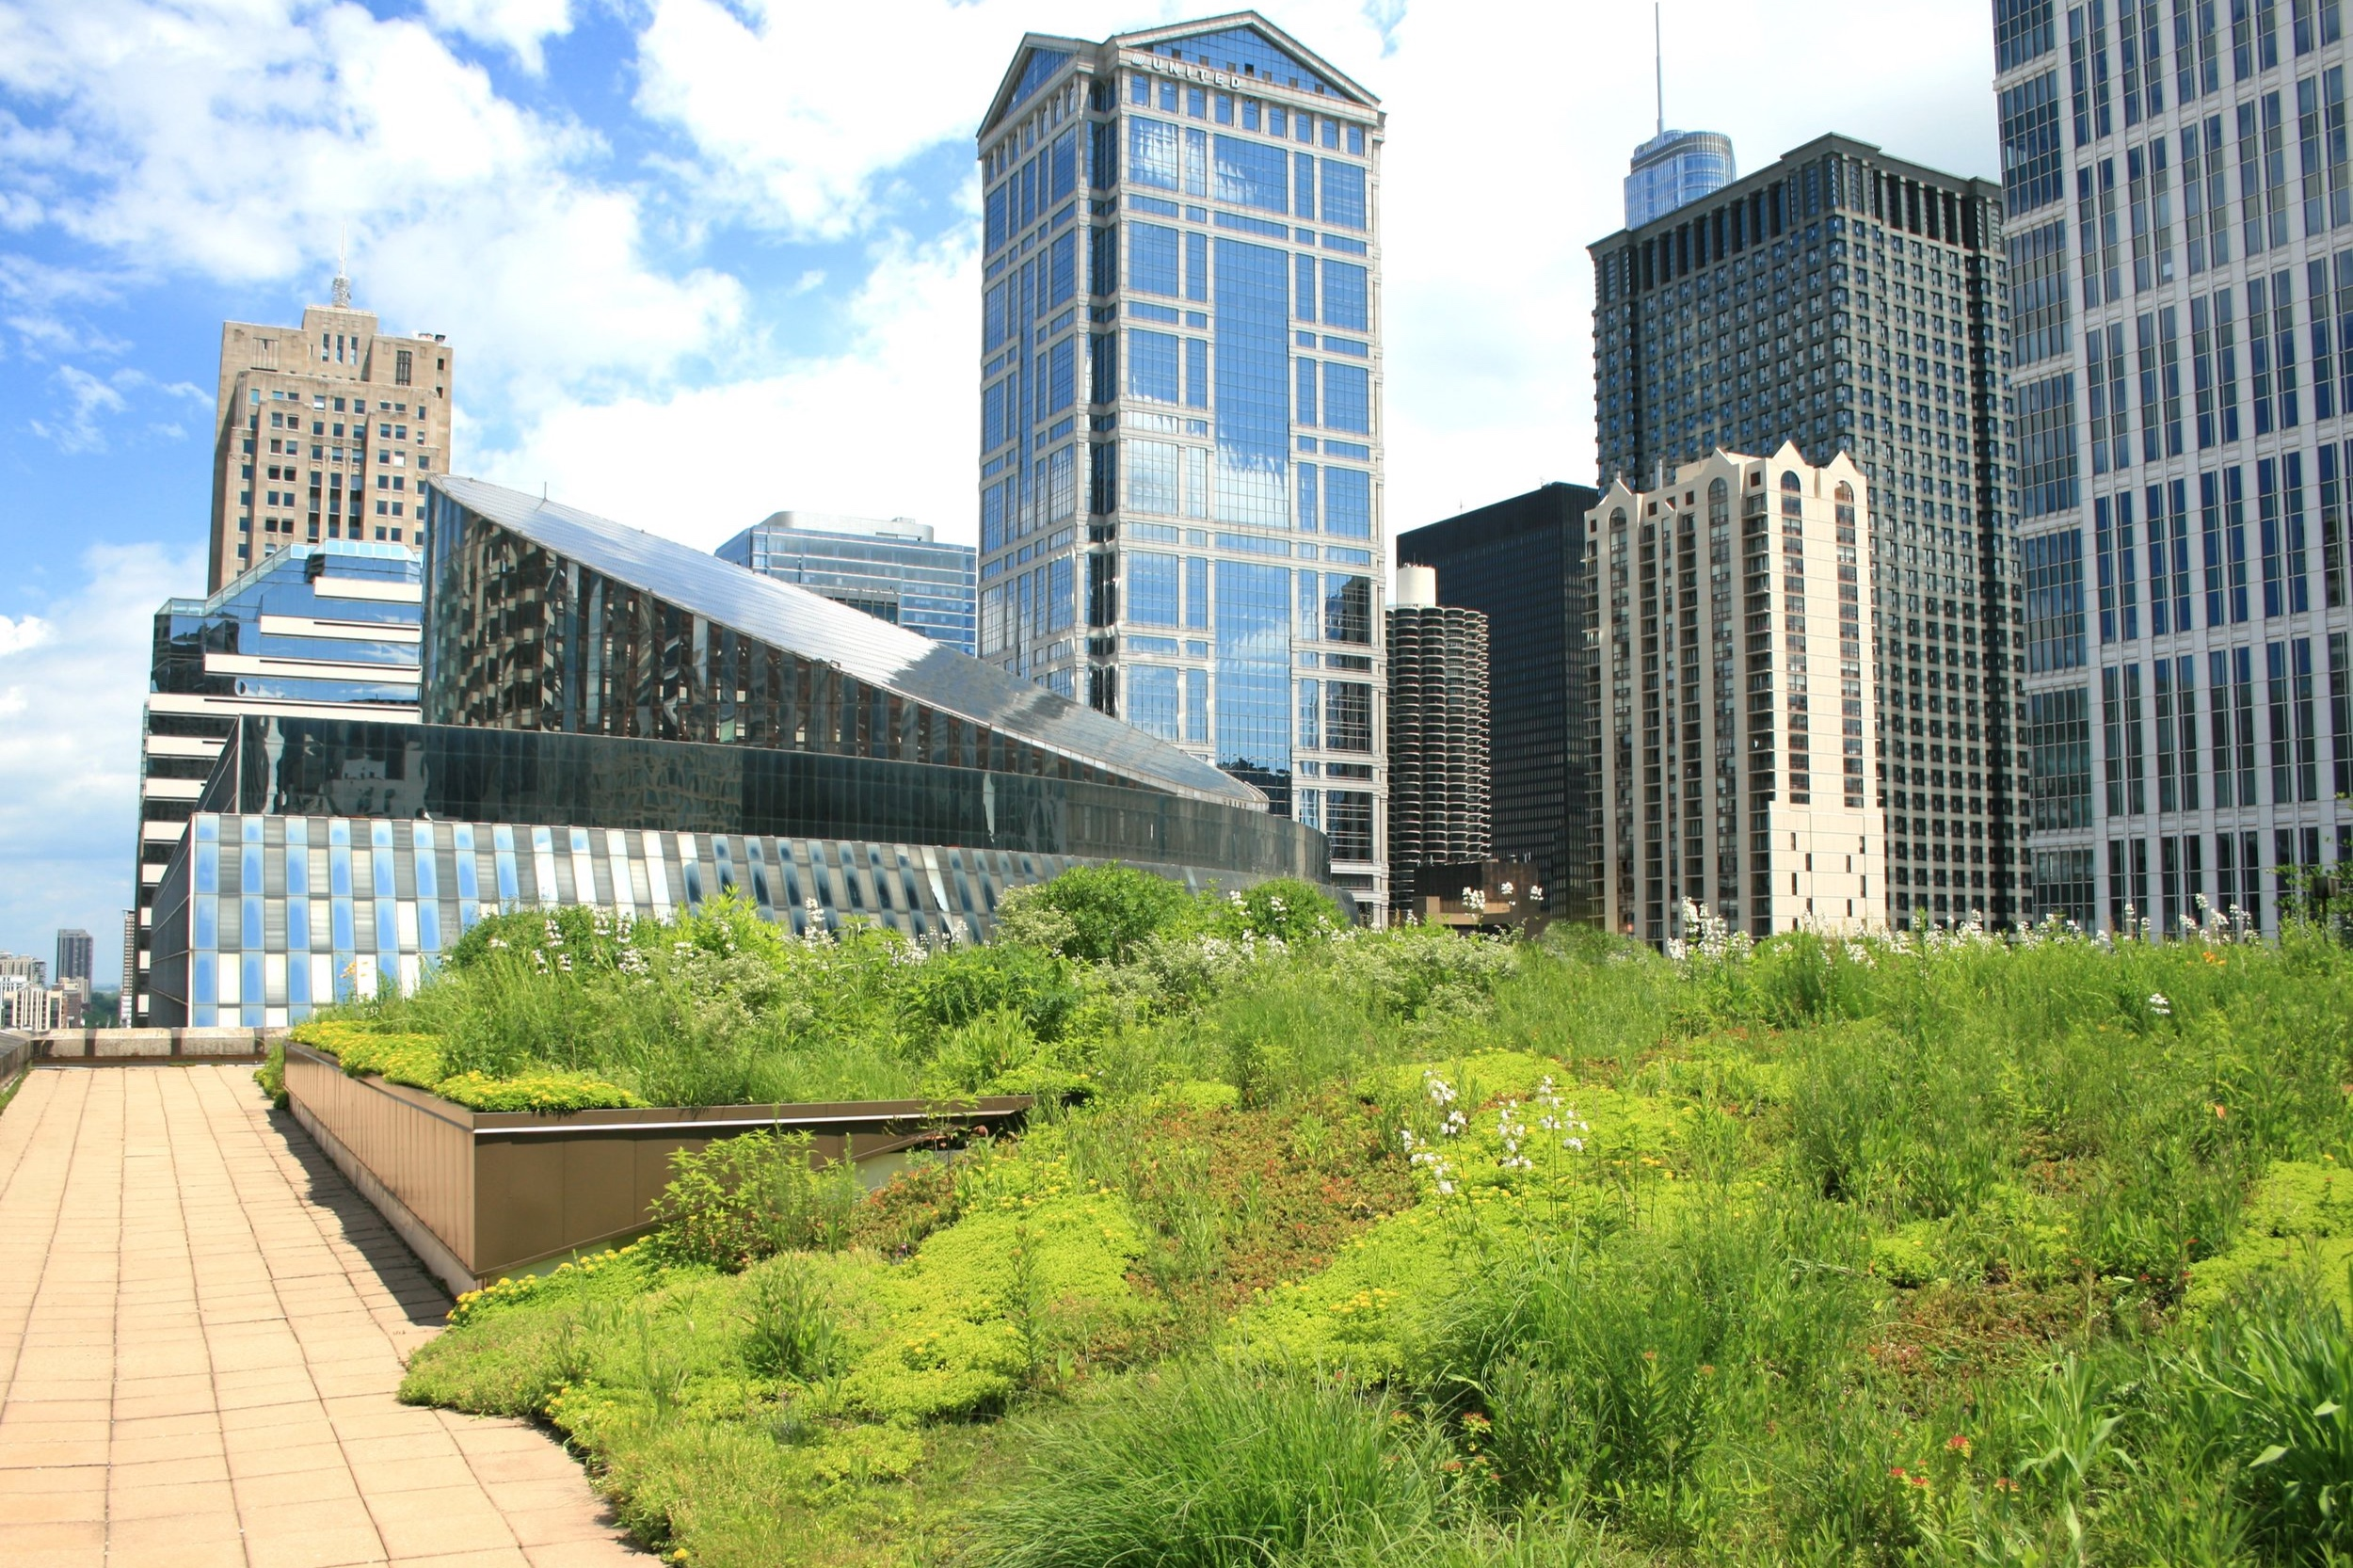 City Hall Green Roof -